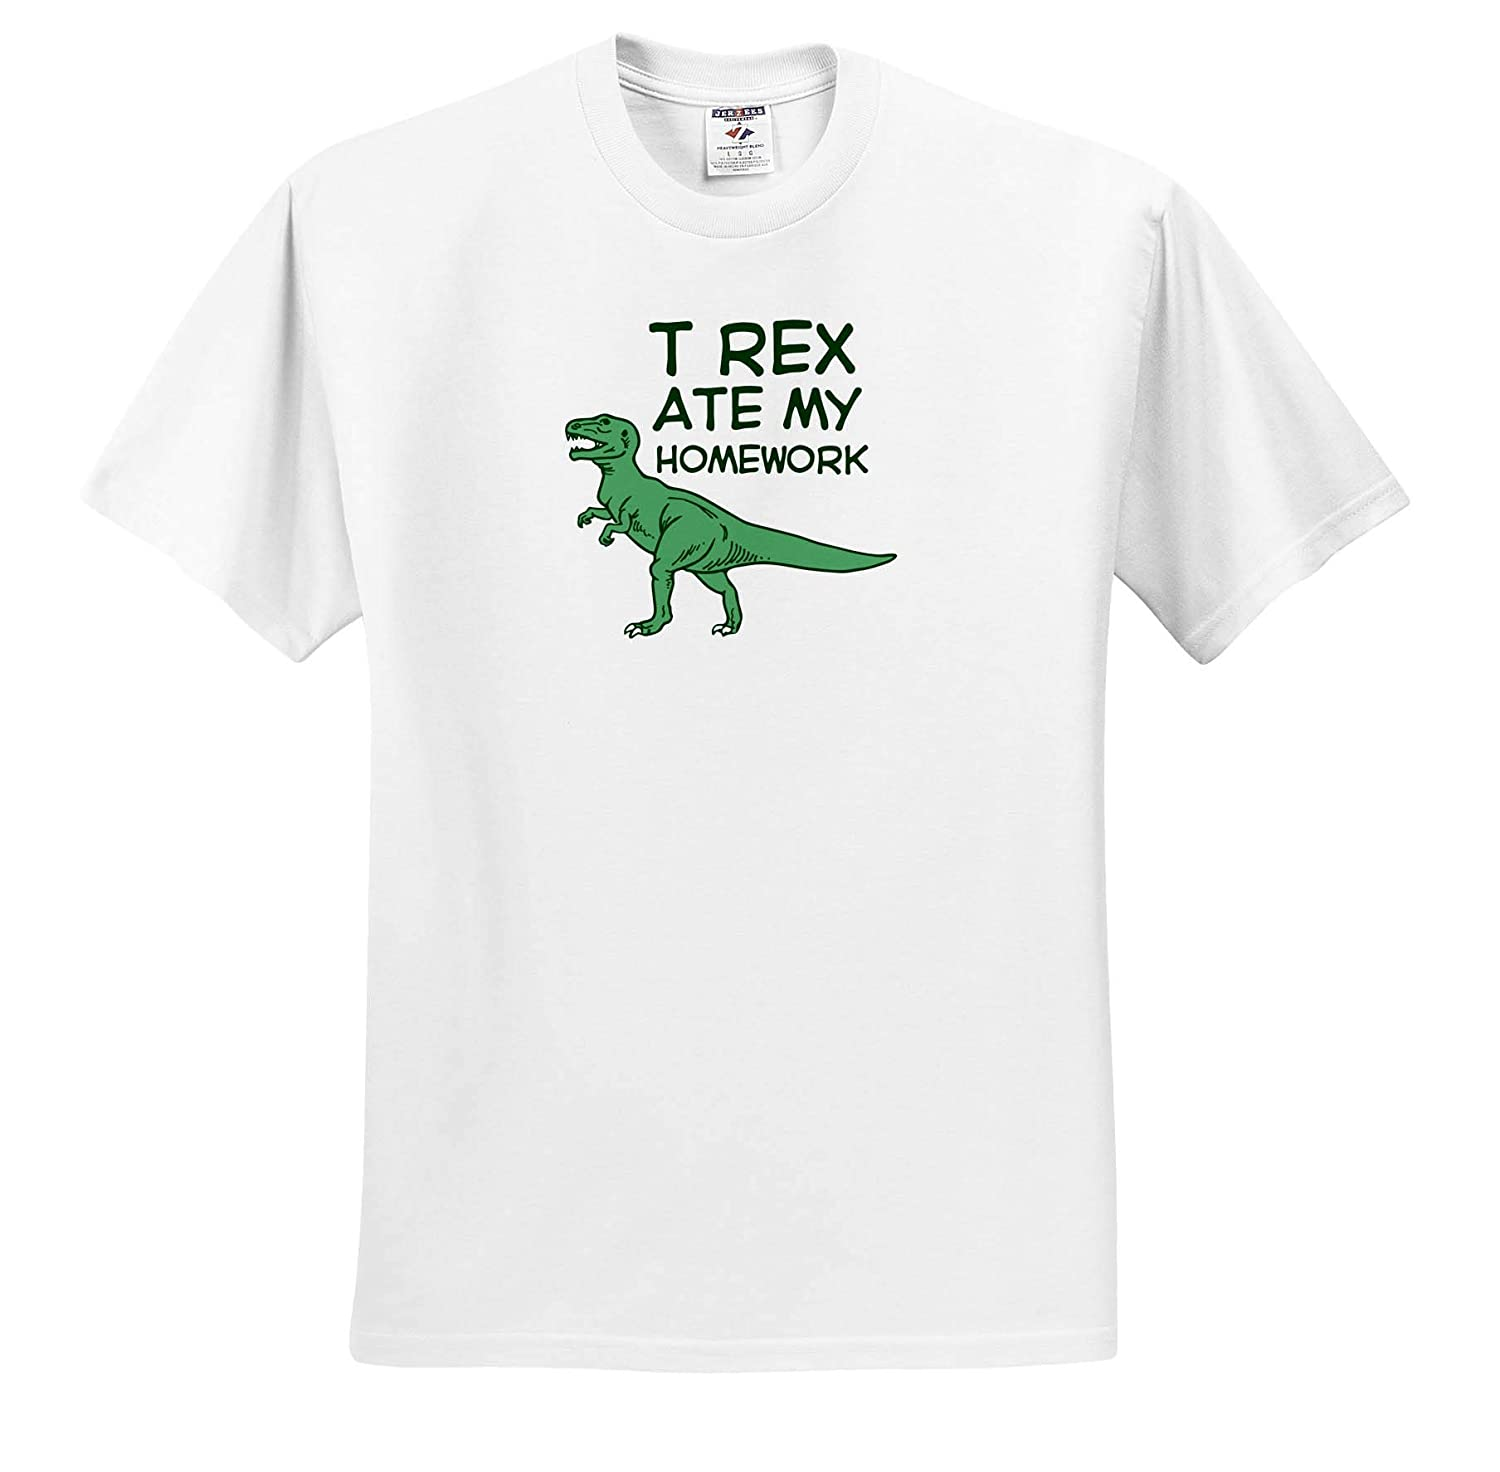 3dRose Russ Billington Designs Funny T Rex Ate My Homework Design in Green and White T-Shirts